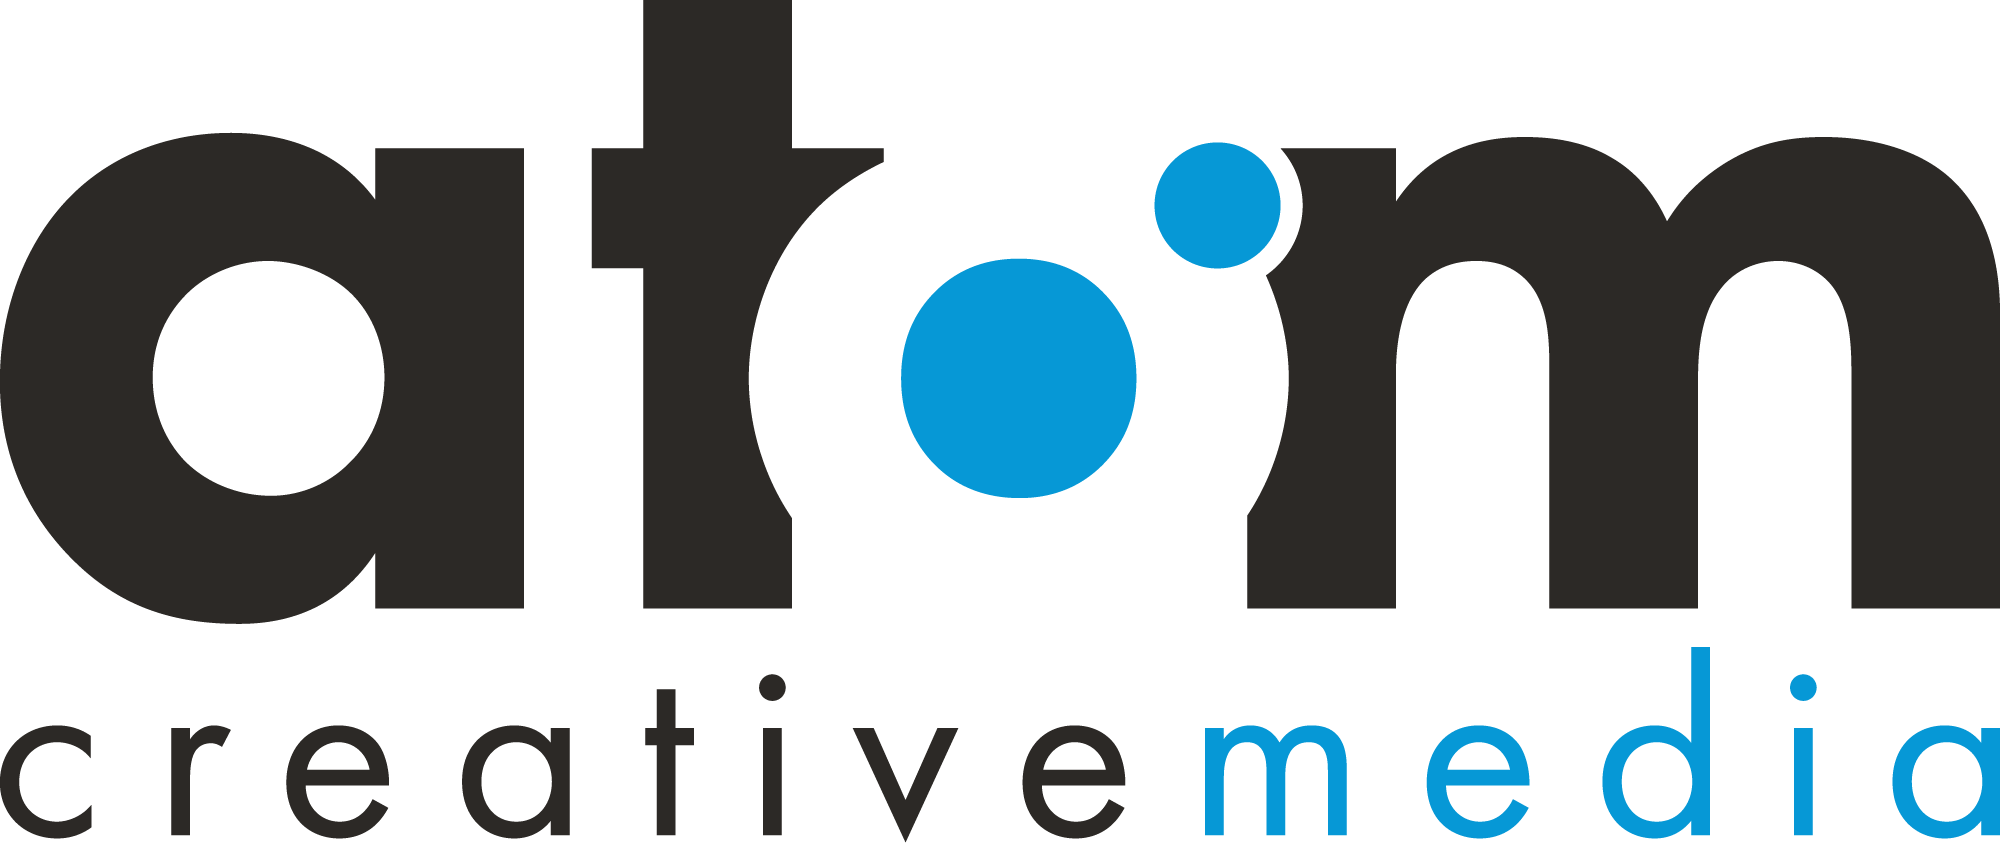 Atom Creative Media Logo for Website Design & Branding in Southend-on-Sea, Essex